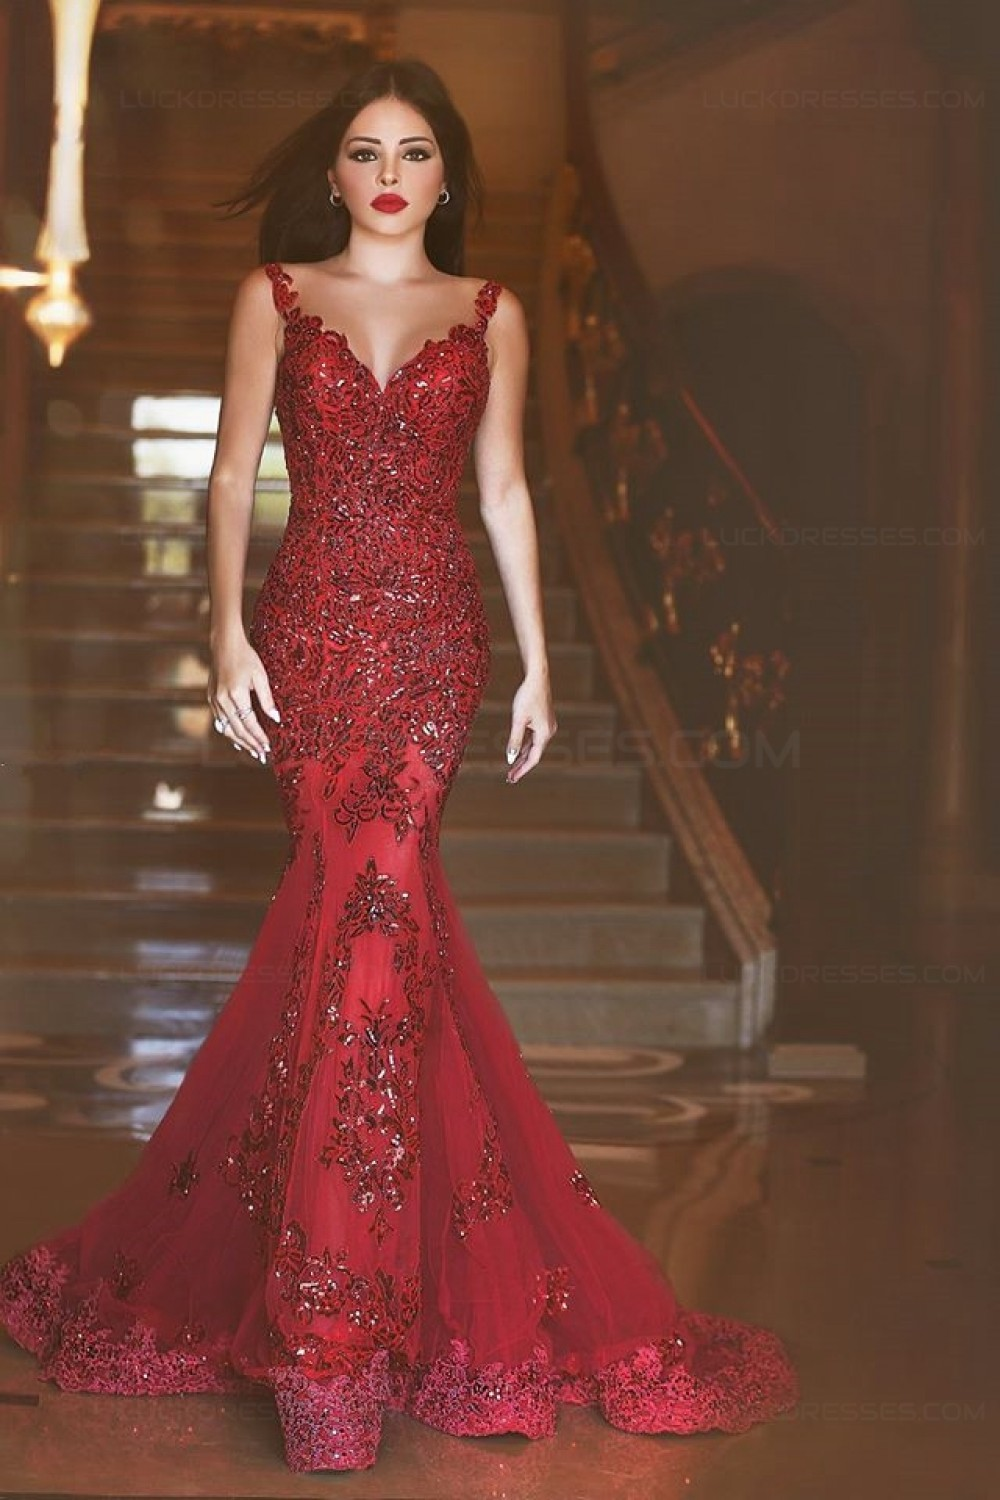 Mermaid Long Red Lace Prom Dresses Party Evening Gowns 3020242